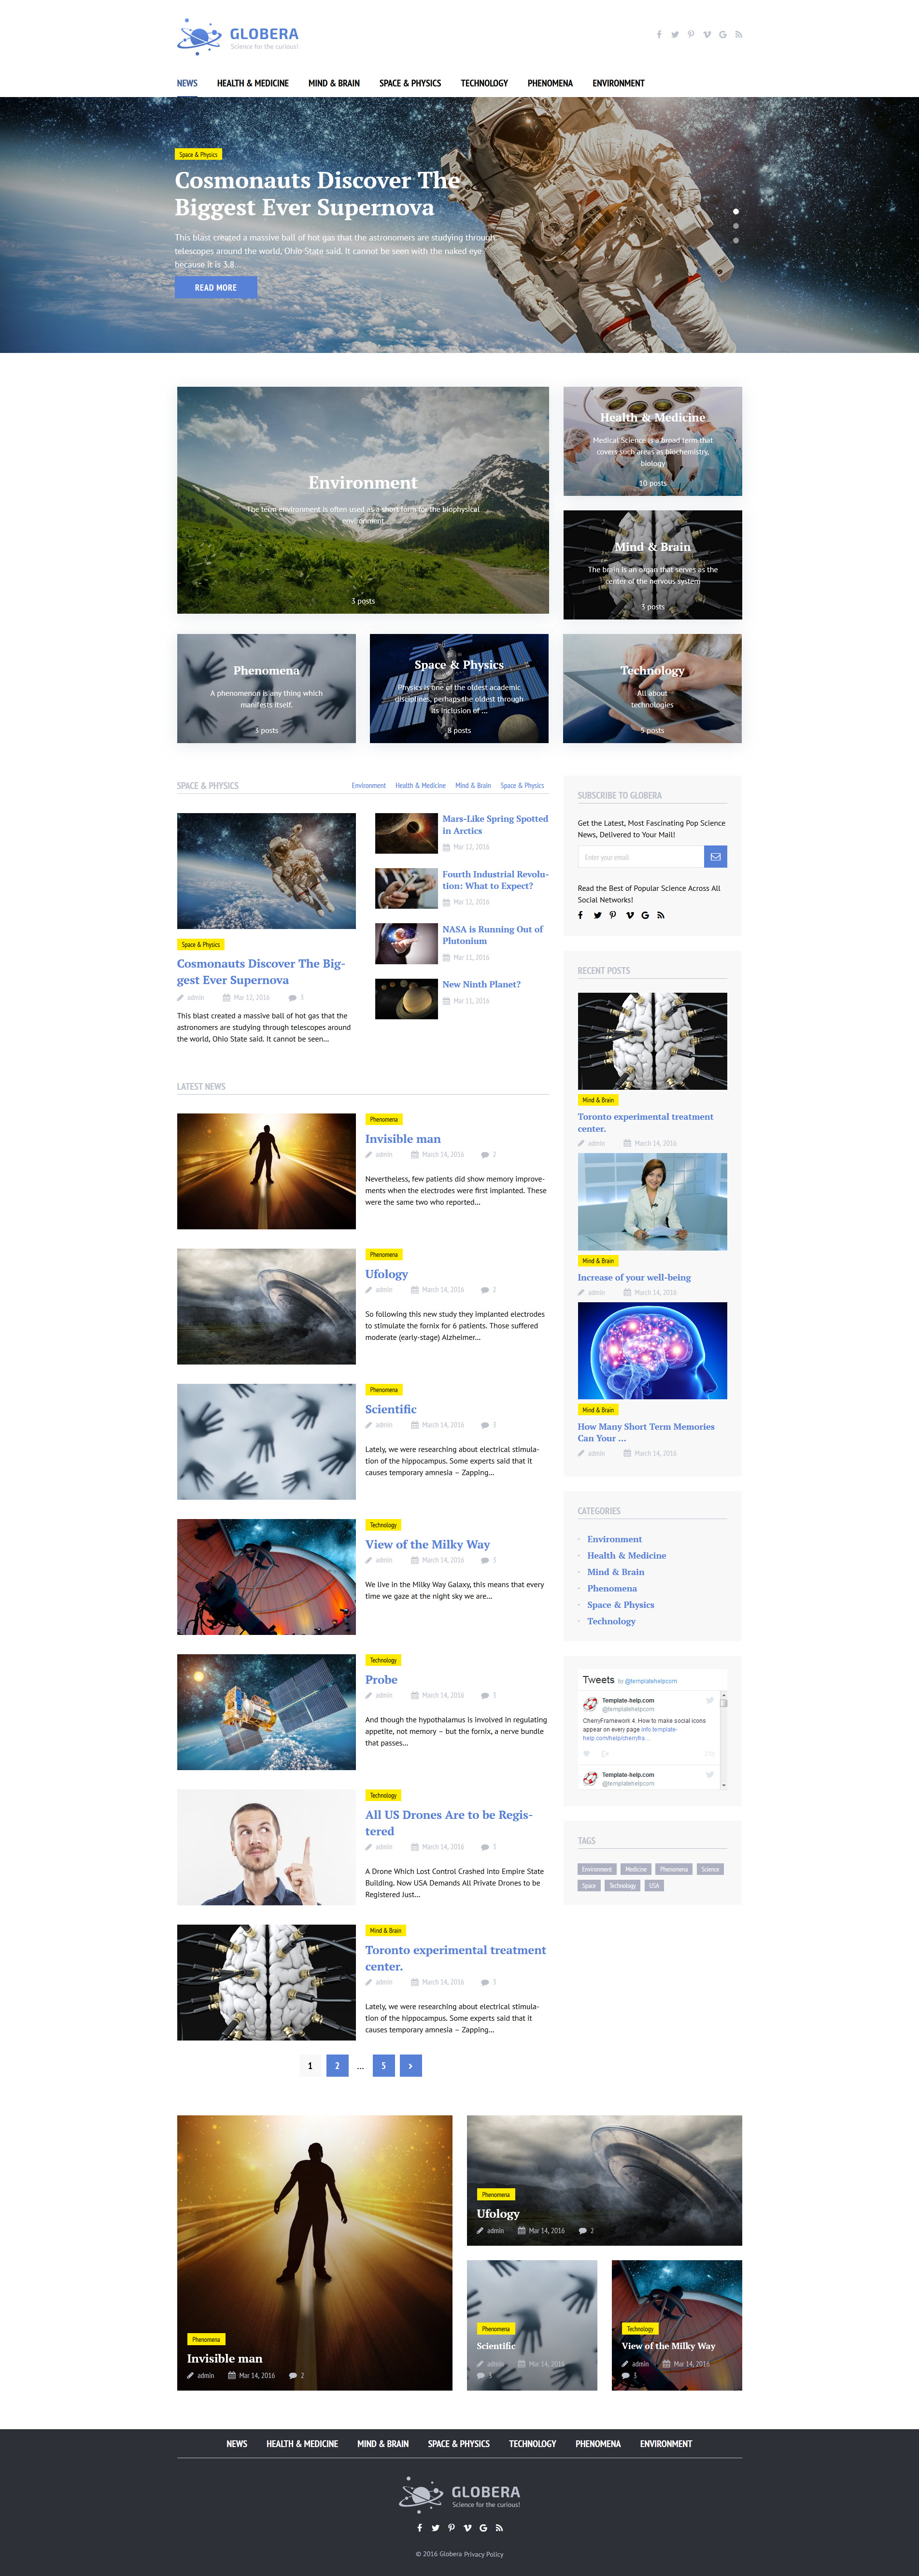 Science News Portal & Magazine Wordpress Theme WordPress Theme - screenshot